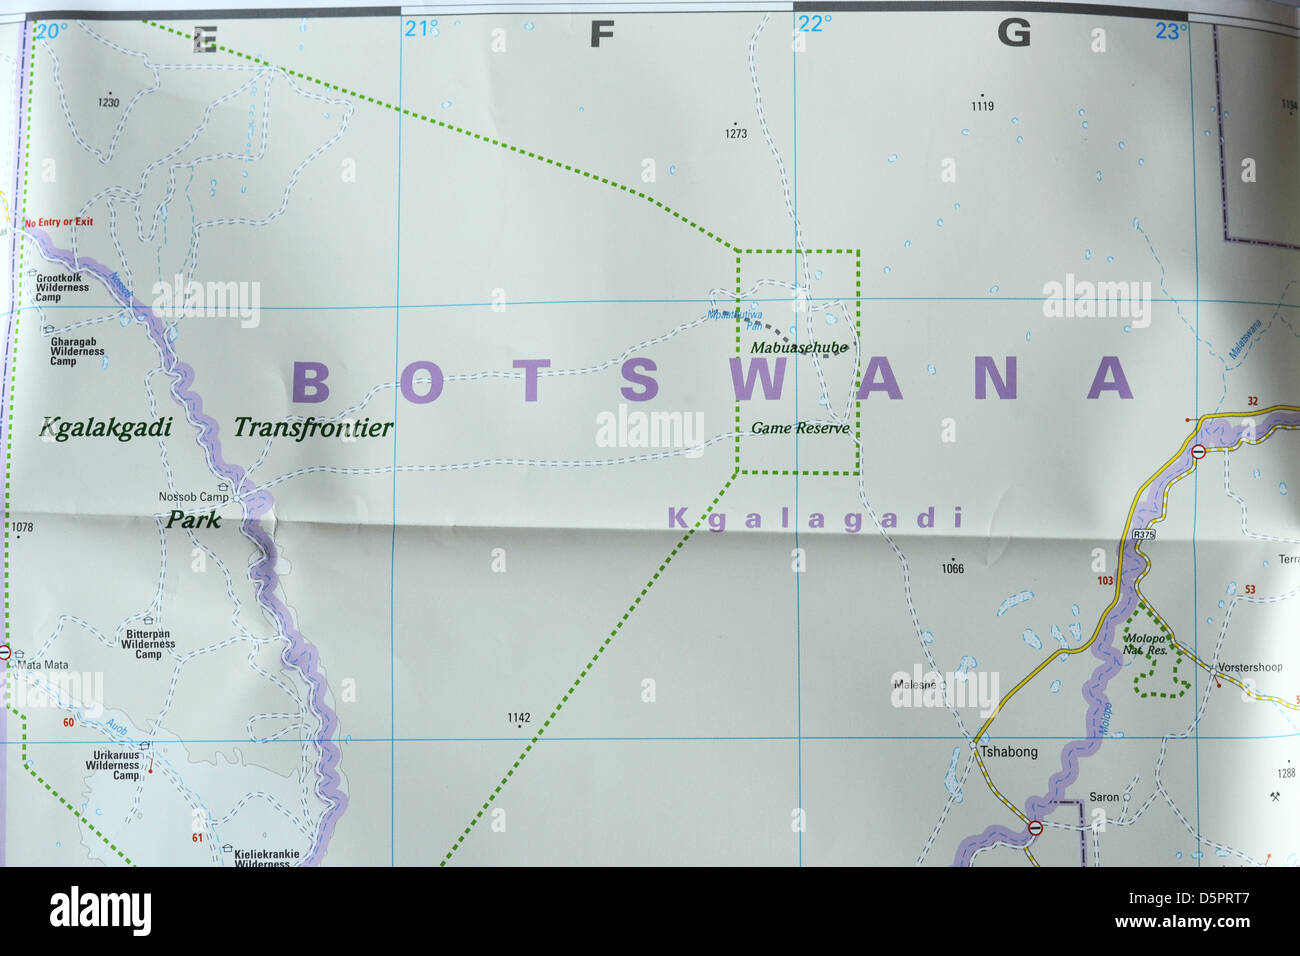 Botswana South Africa Map.Image Of A Map Of Southern Africa Focusing On Botswana Stock Photo